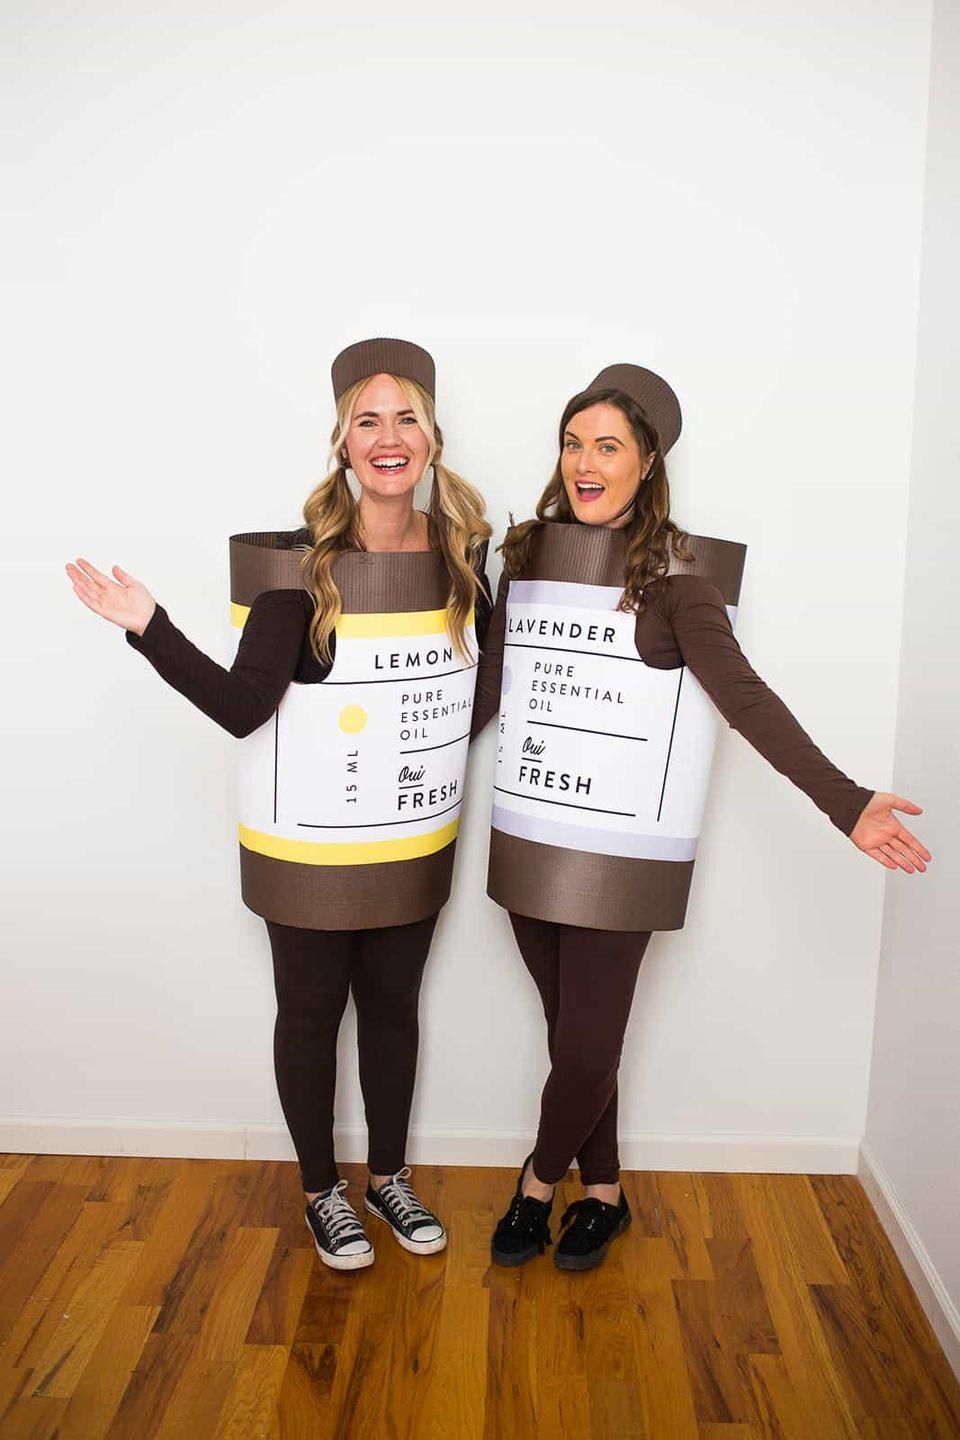 """<p>This ultra creative Halloween costume is a breath of fresh air in a sea of not-so-modest options available on store shelves. </p><p><a class=""""link rapid-noclick-resp"""" href=""""https://abeautifulmess.com/essential-oil-halloween-costume/"""" rel=""""nofollow noopener"""" target=""""_blank"""" data-ylk=""""slk:GET THE TUTORIAL"""">GET THE TUTORIAL</a></p><p><a class=""""link rapid-noclick-resp"""" href=""""https://www.amazon.com/gp/product/B07772C7B2?tag=syn-yahoo-20&ascsubtag=%5Bartid%7C10072.g.33547559%5Bsrc%7Cyahoo-us"""" rel=""""nofollow noopener"""" target=""""_blank"""" data-ylk=""""slk:SHOP CORRUGATED CARDBOARD"""">SHOP CORRUGATED CARDBOARD</a></p>"""